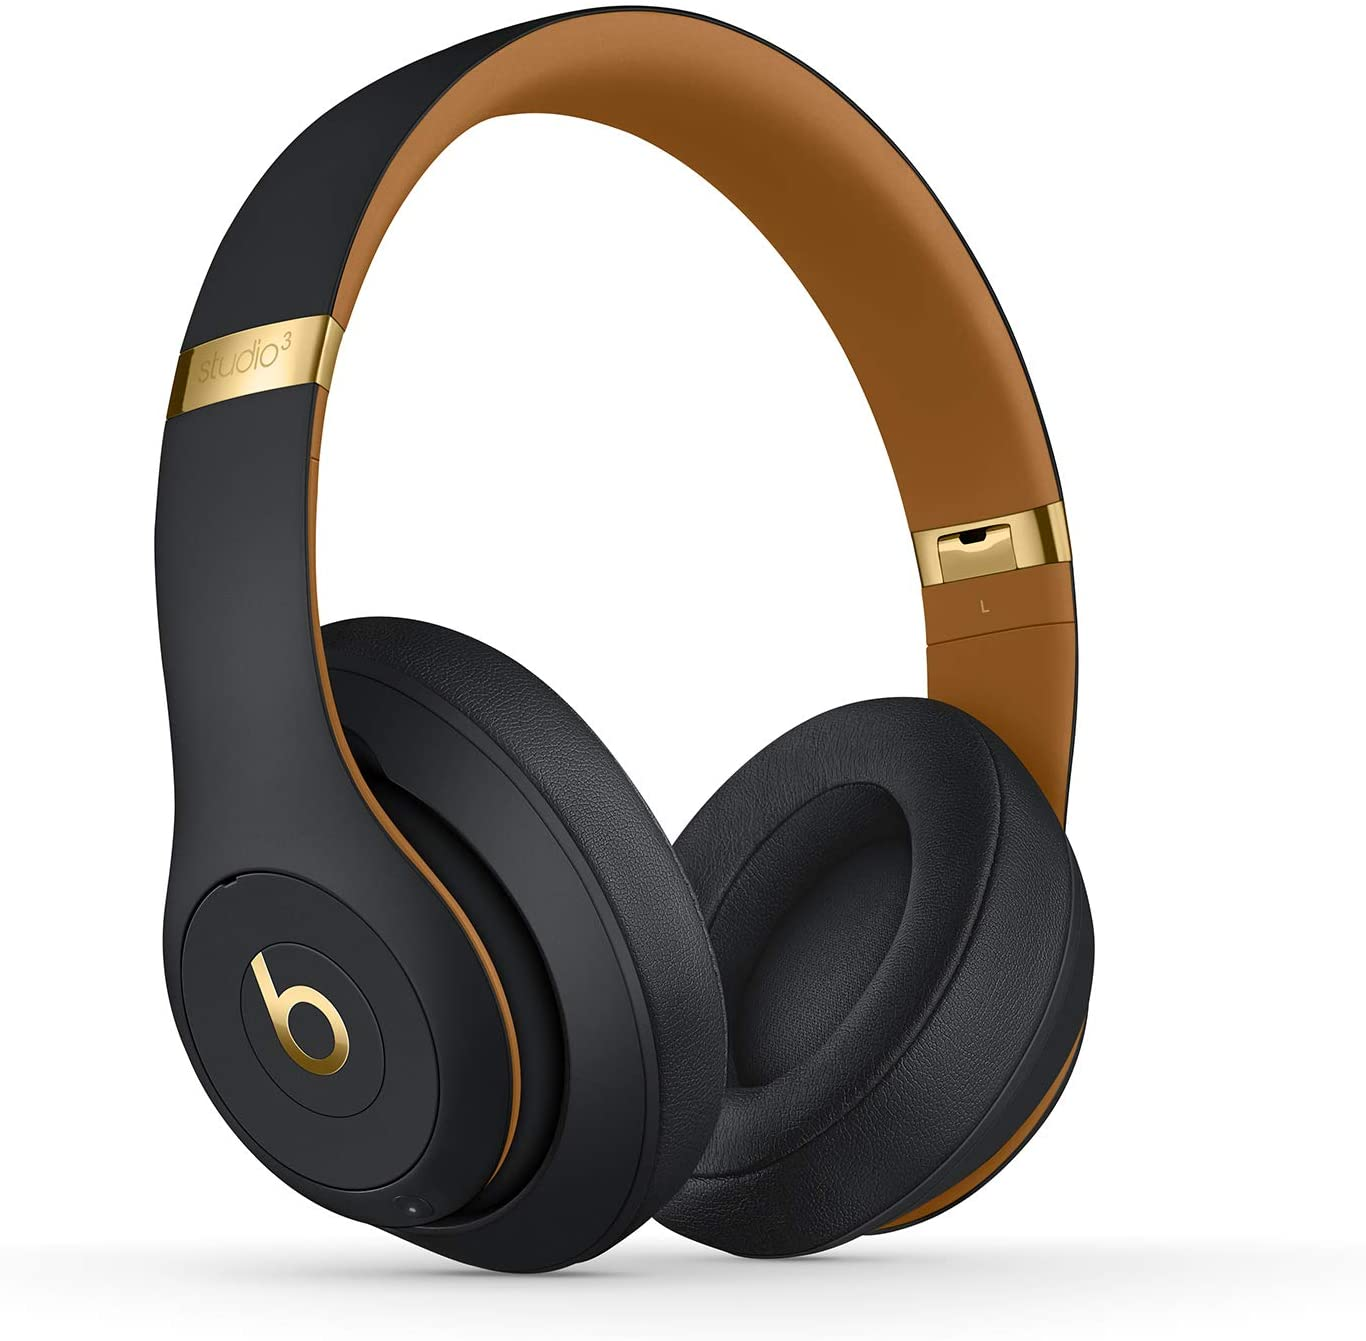 Beats Studio3 Wireless Noise Cancelling Over-Ear Headphones - Apple W1 Headphone Chip, Class 1 Bluetooth, 22 Hours of Listening Time, Built-in Microphone - Midnight Black (Latest Model)